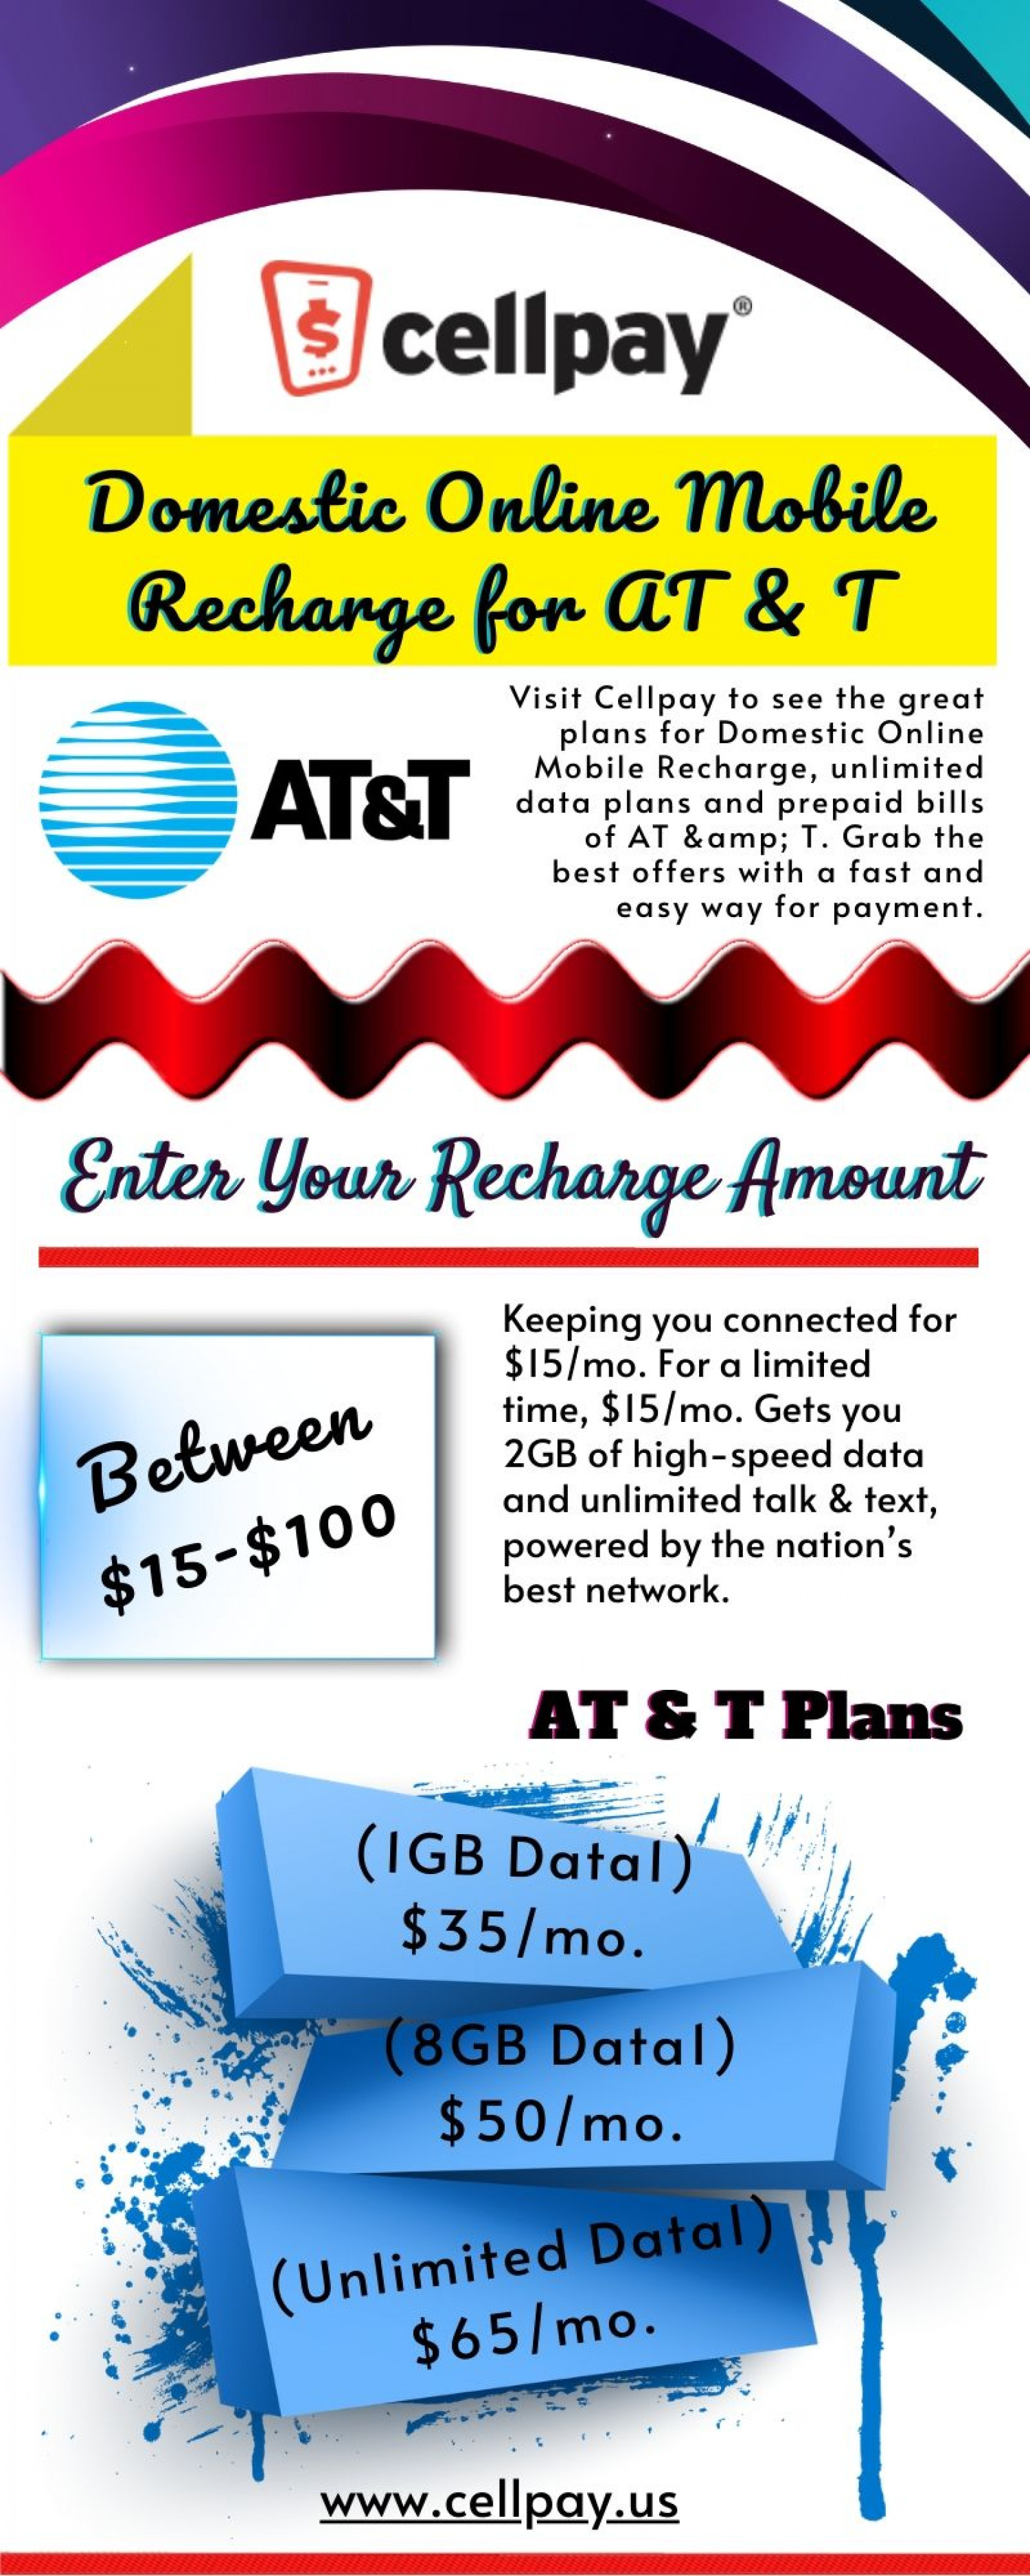 Domestic Online Mobile Recharge for AT & T Infographic